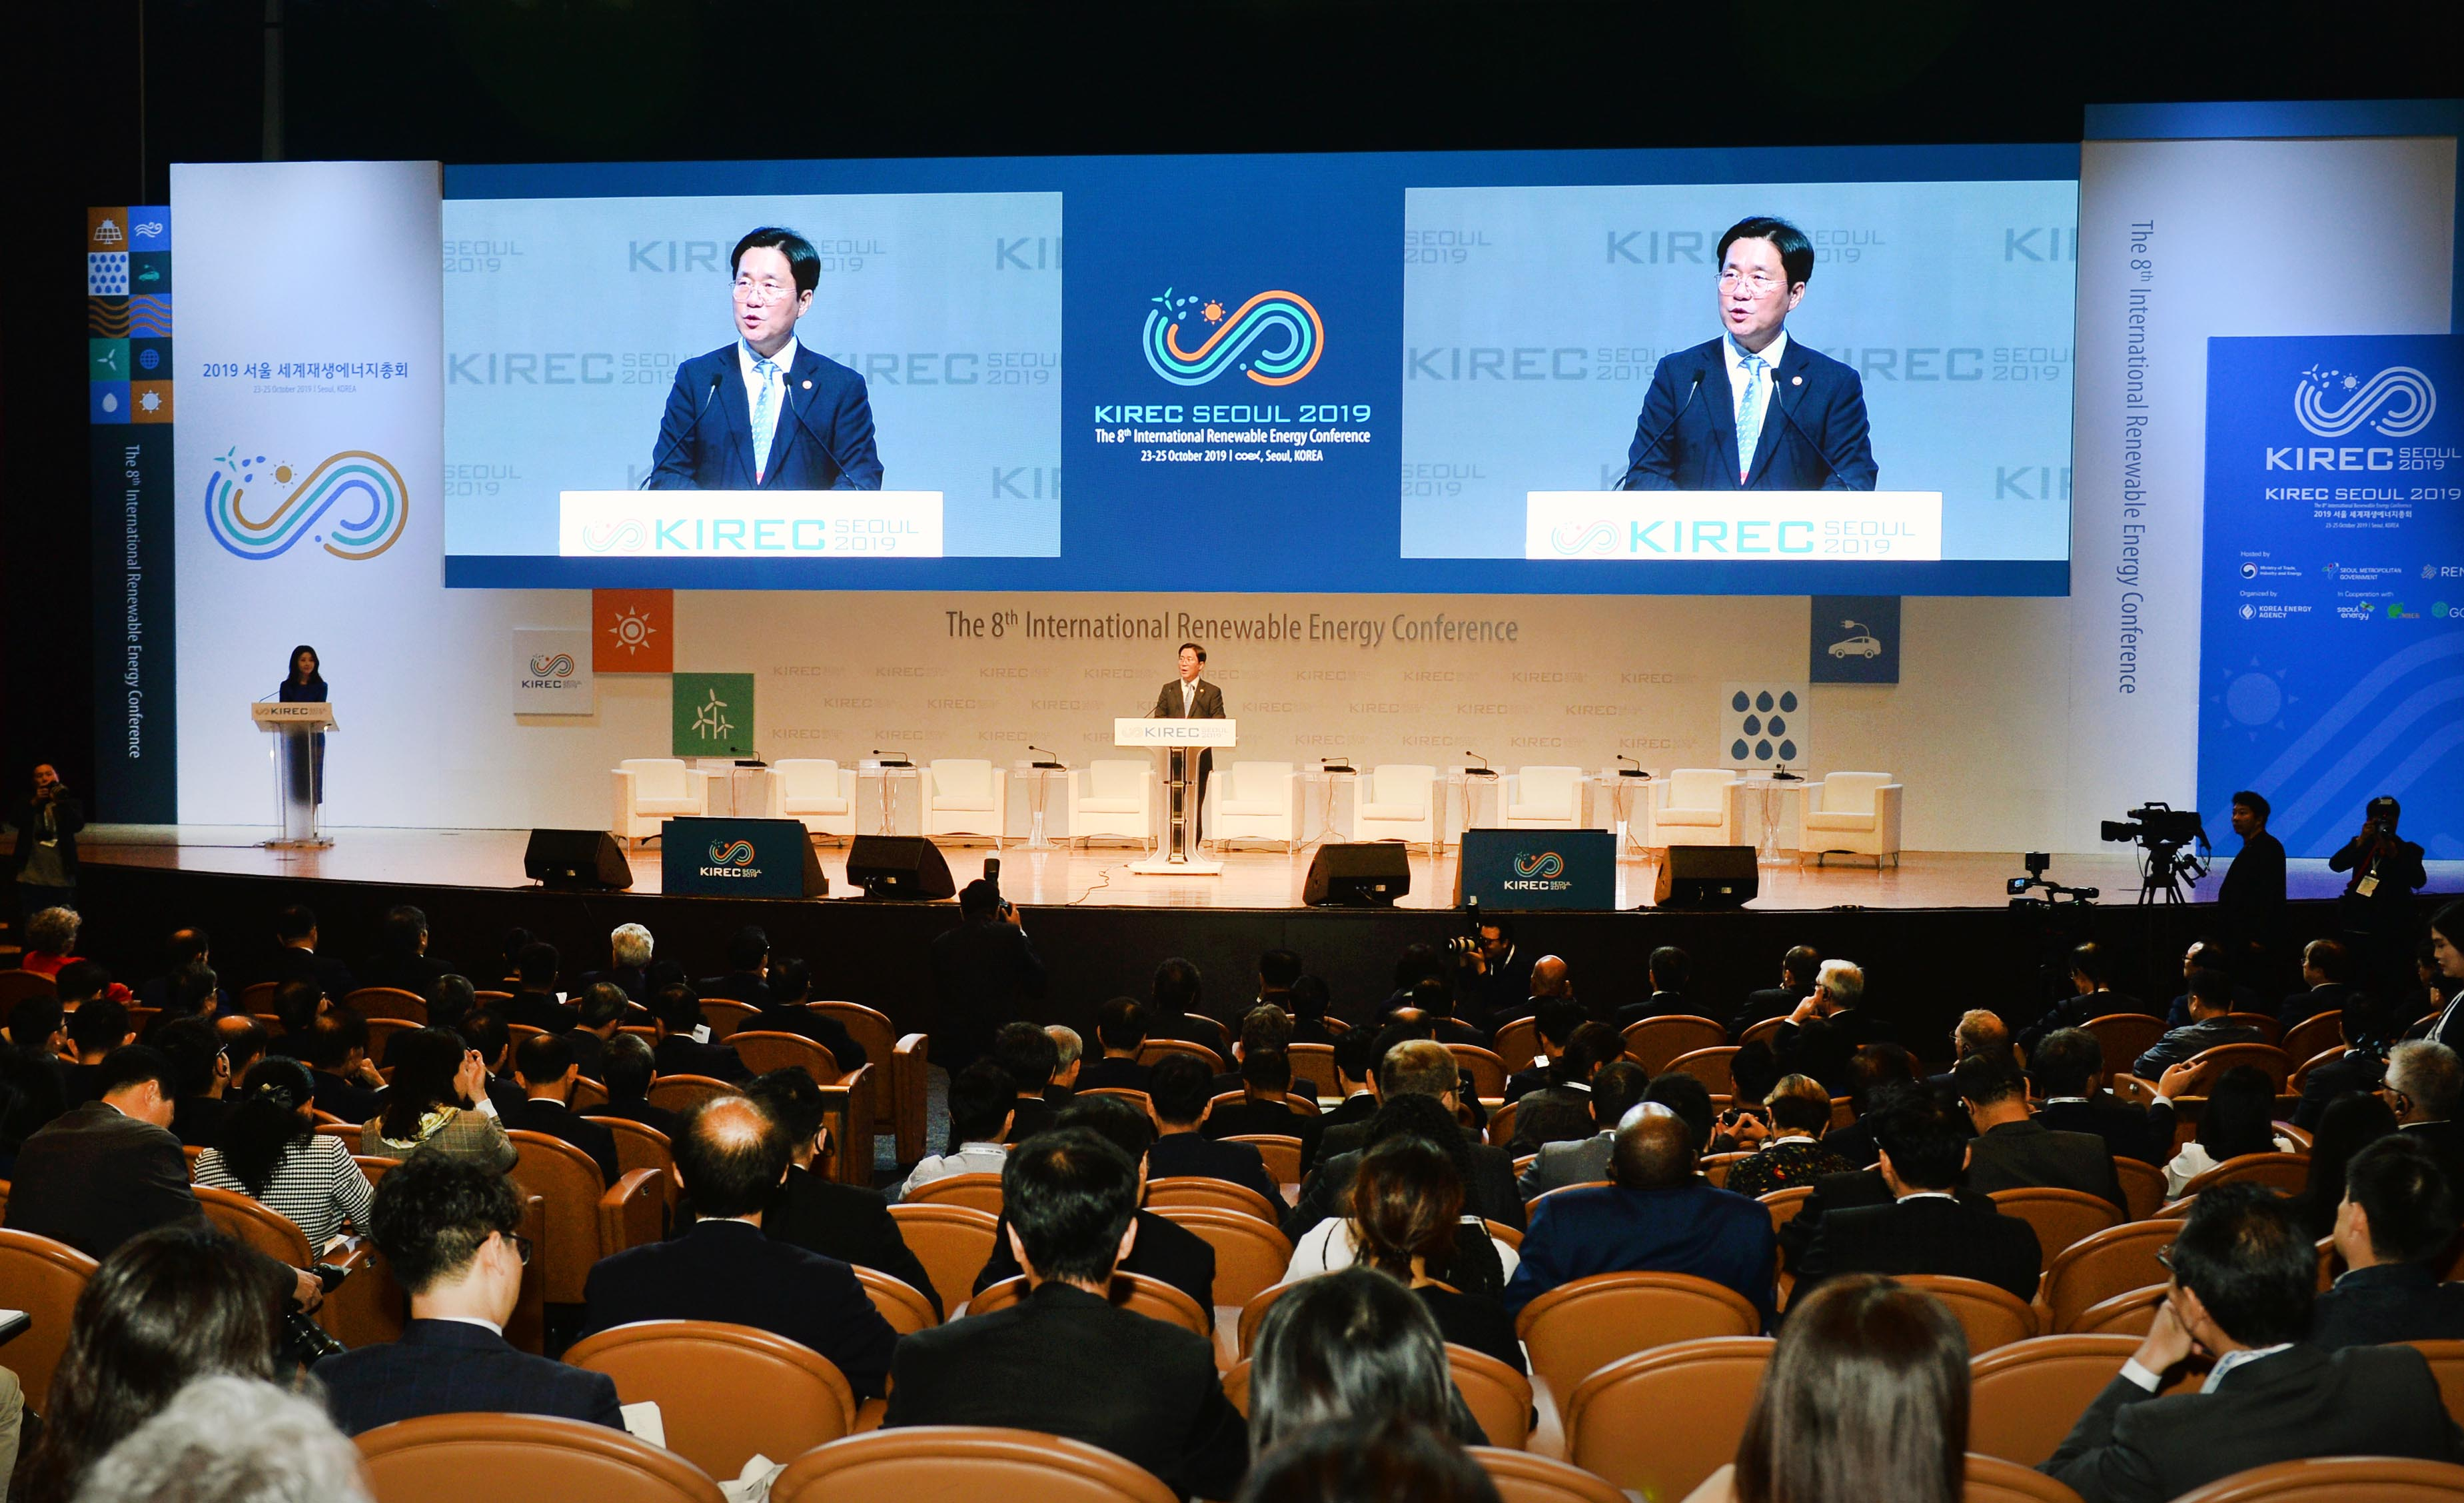 Minister Sung delivers welcoming speech at KIREC Seoul 2019